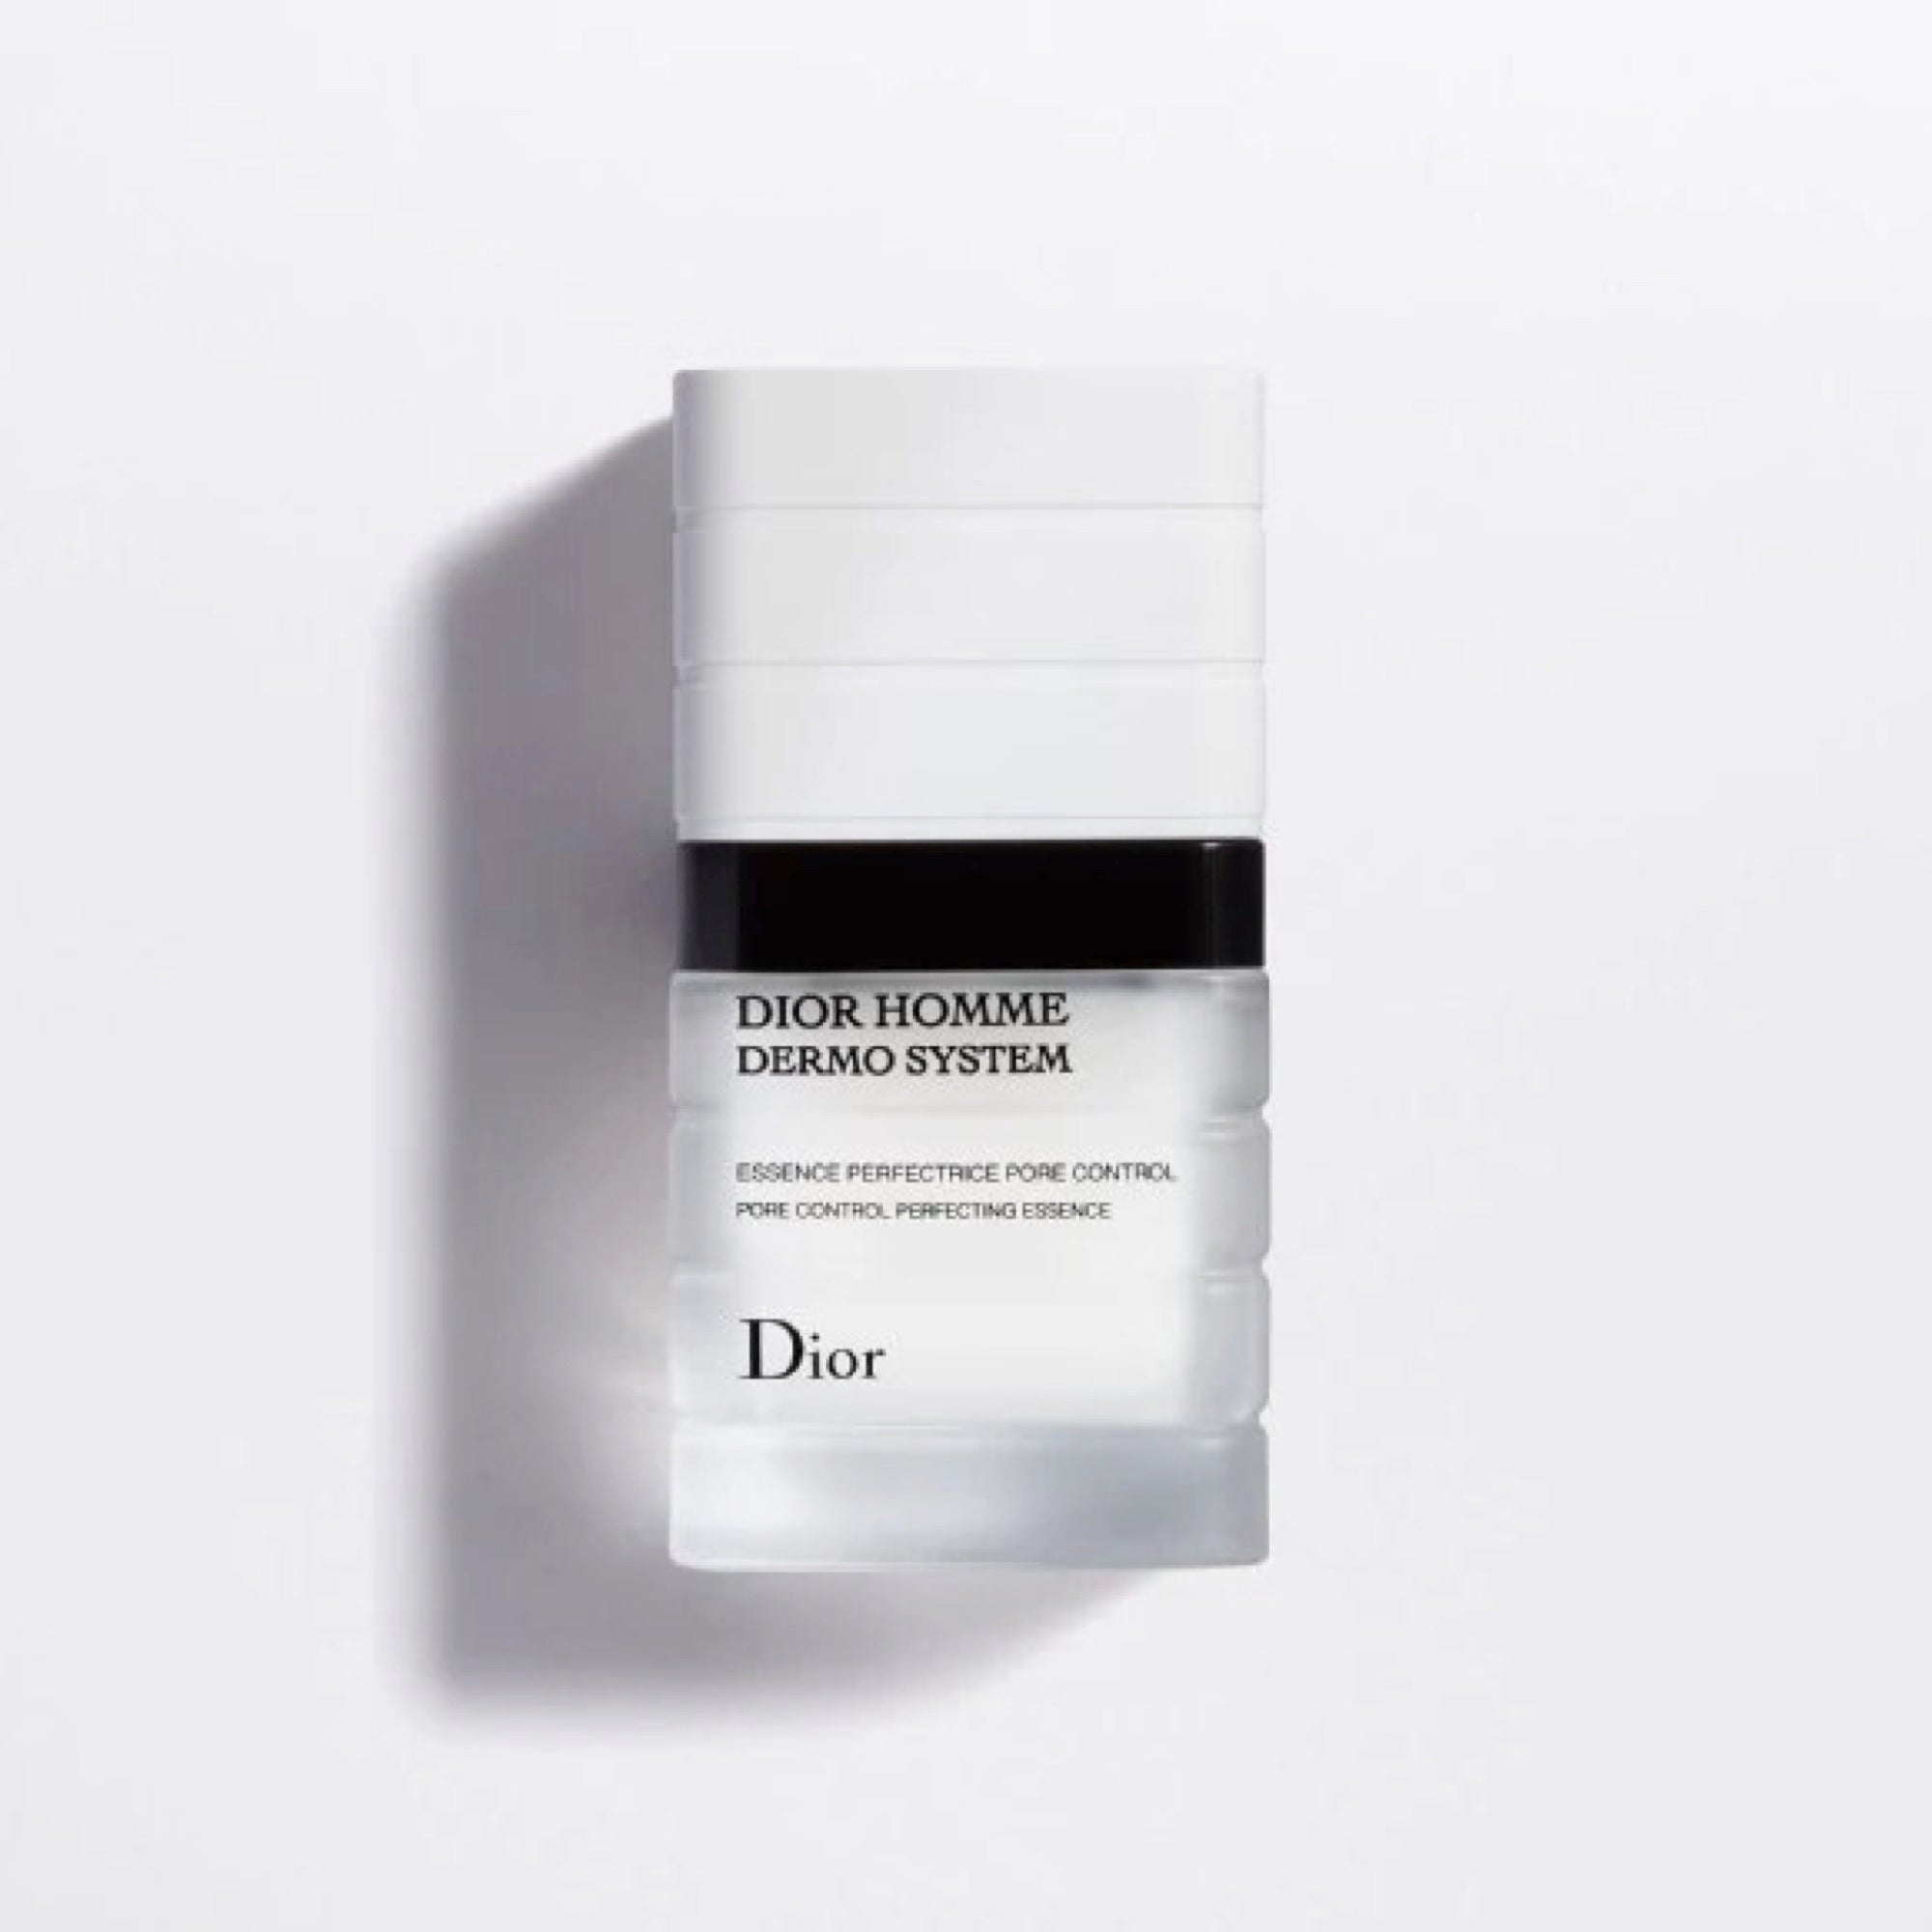 DIOR HOMME DERMO SYSTEM | Pore Control Perfecting Essence - Bio-Fermented Ingredient & Vitamin E Phosphate